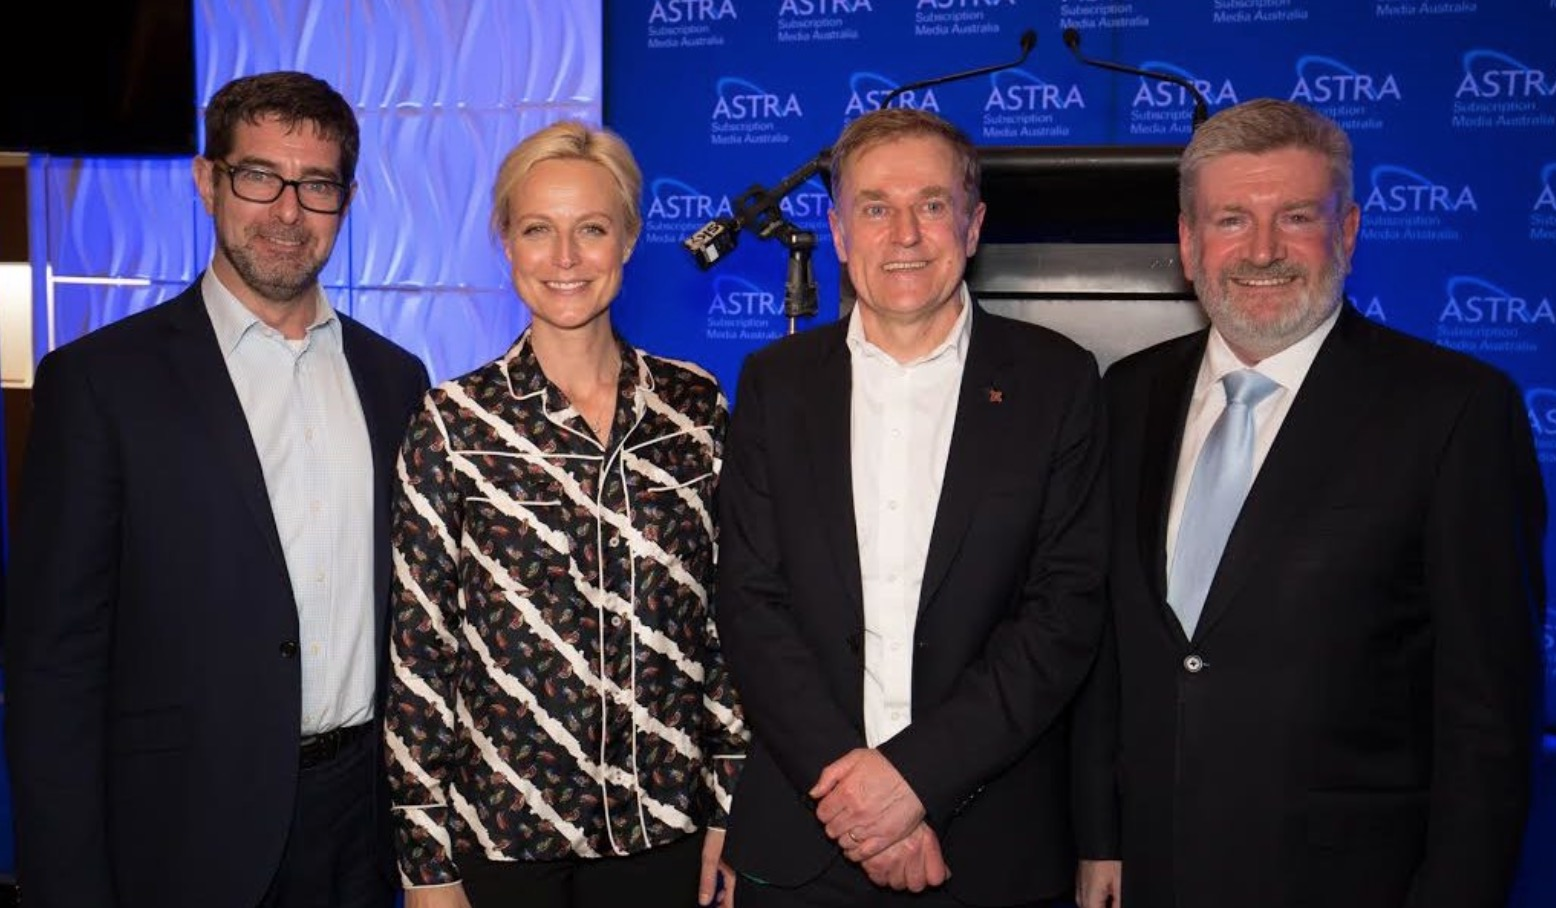 Bruce Meagher, Marta Dusseldorp, Peter Tonagh and Mitch Fifield   Image source -  Mediaweek